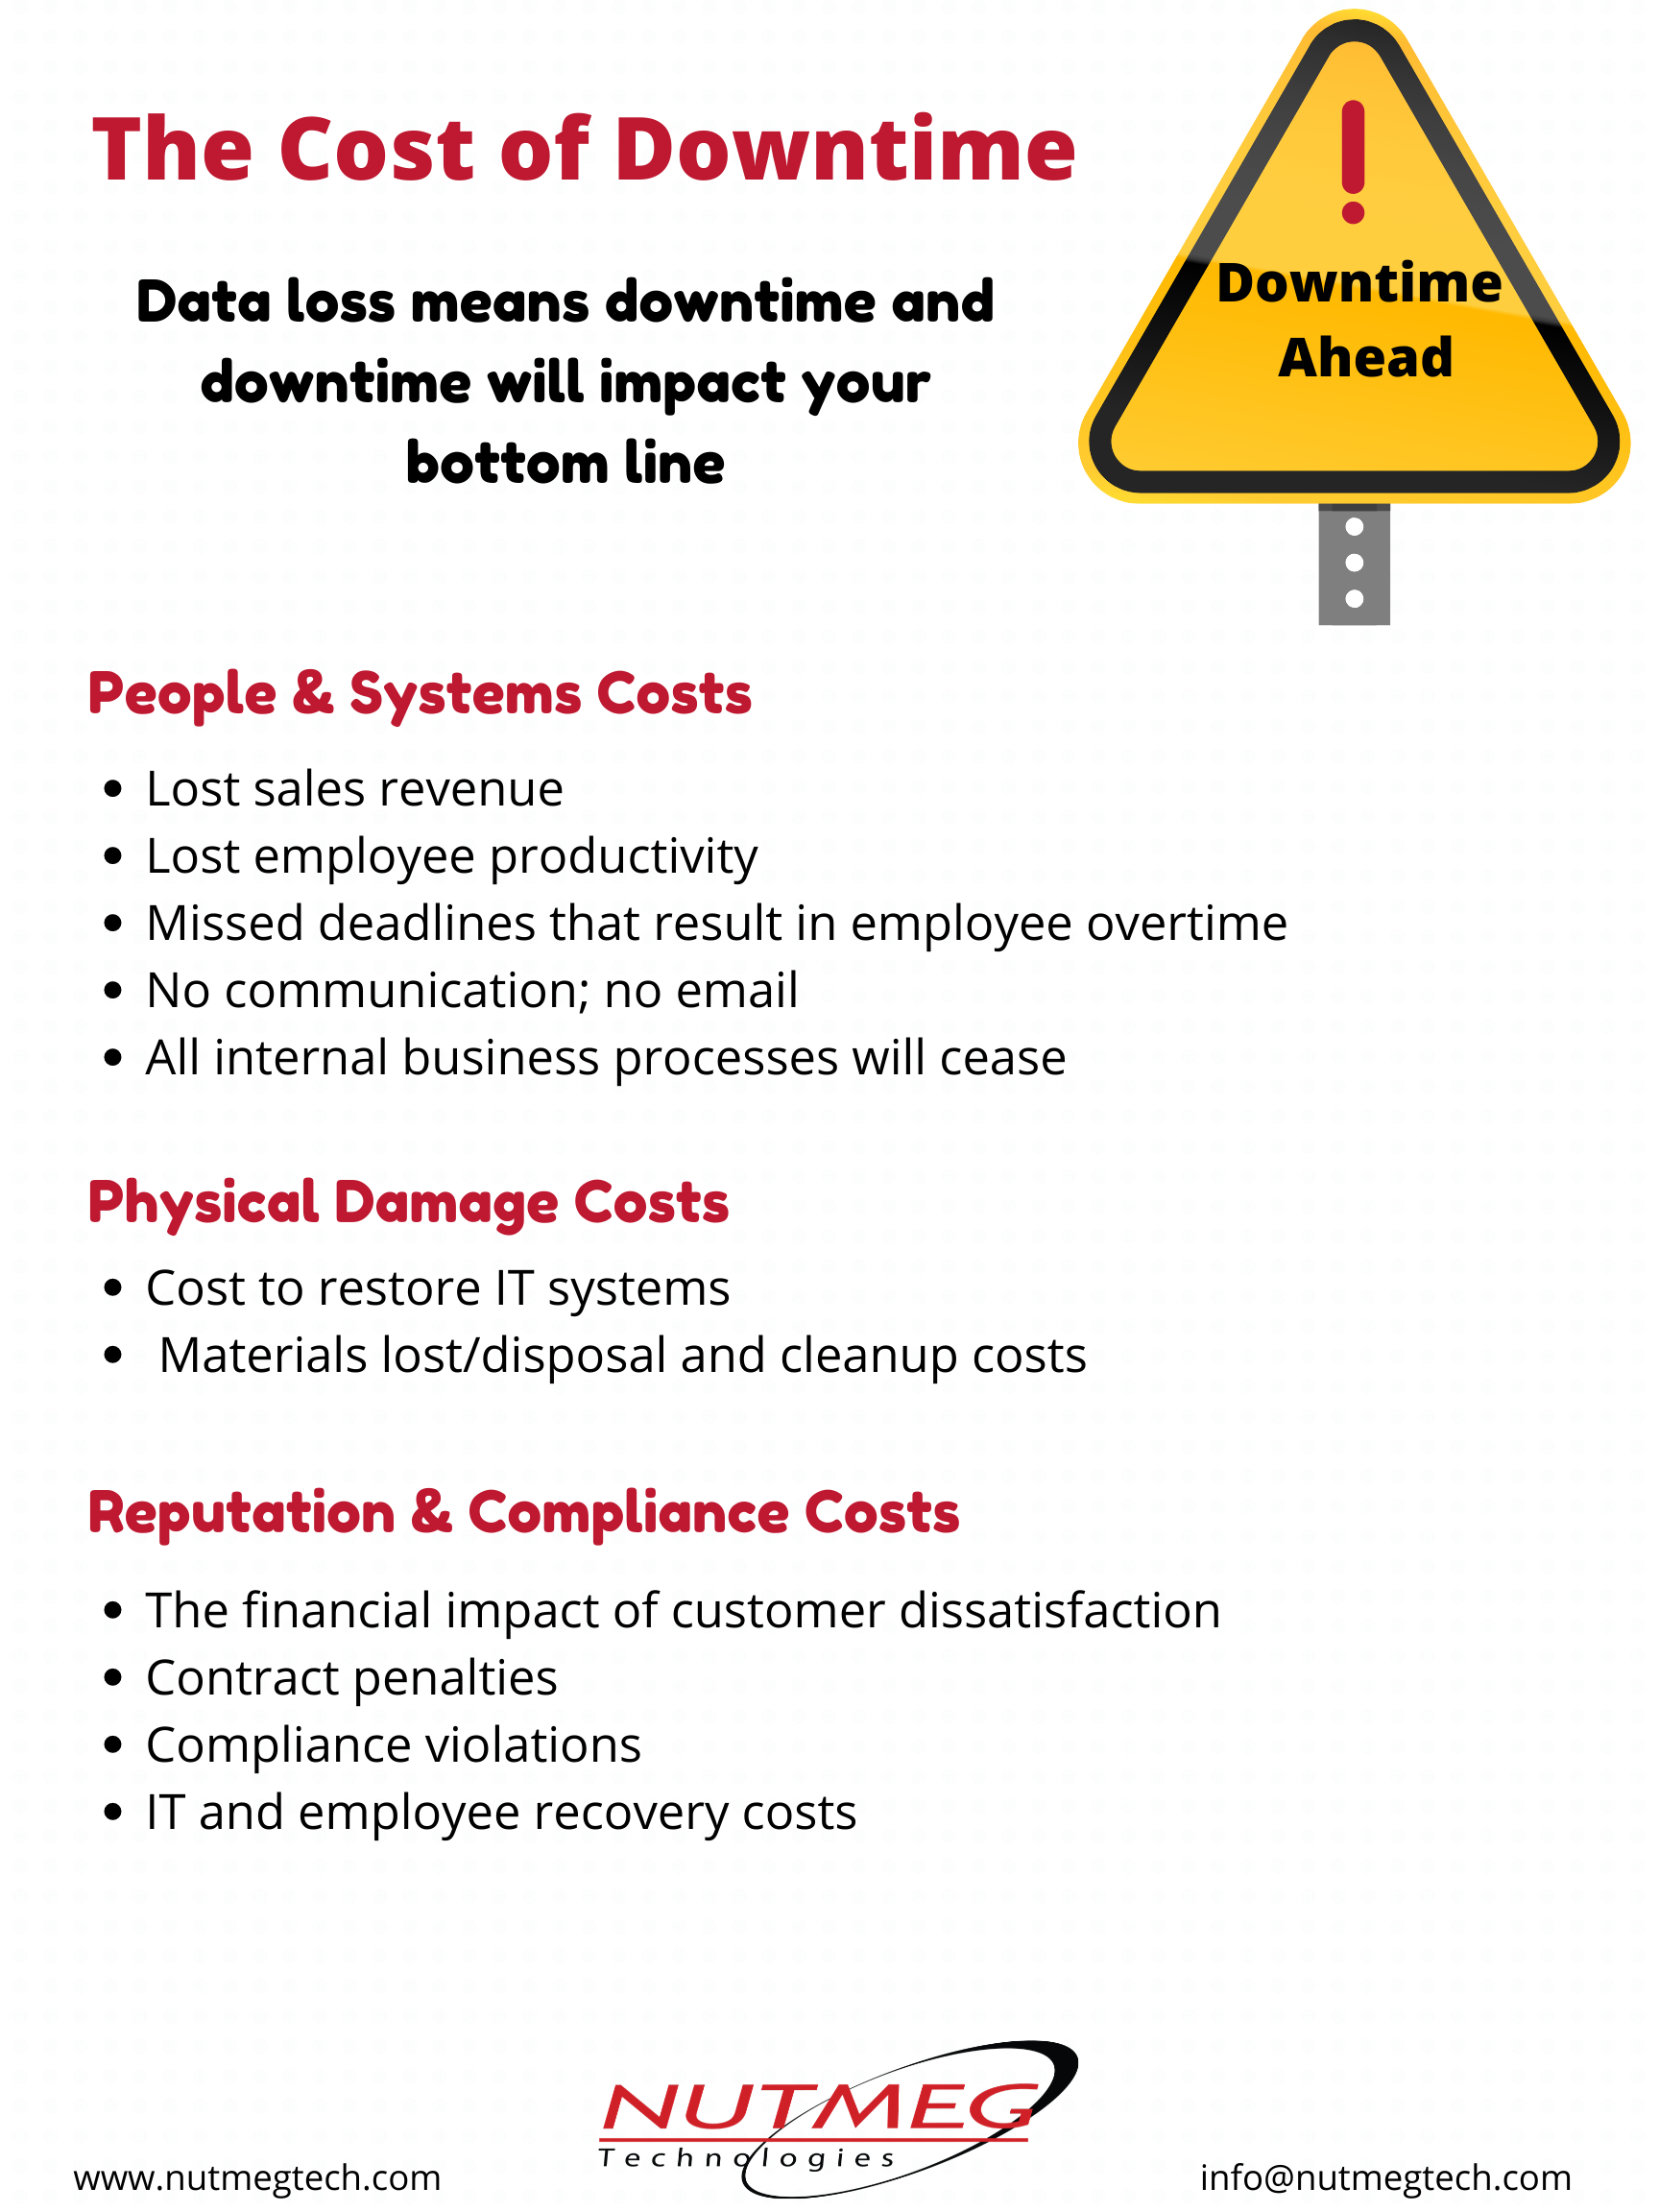 The Cost Of Downtime Business Communication Data Loss Business Process